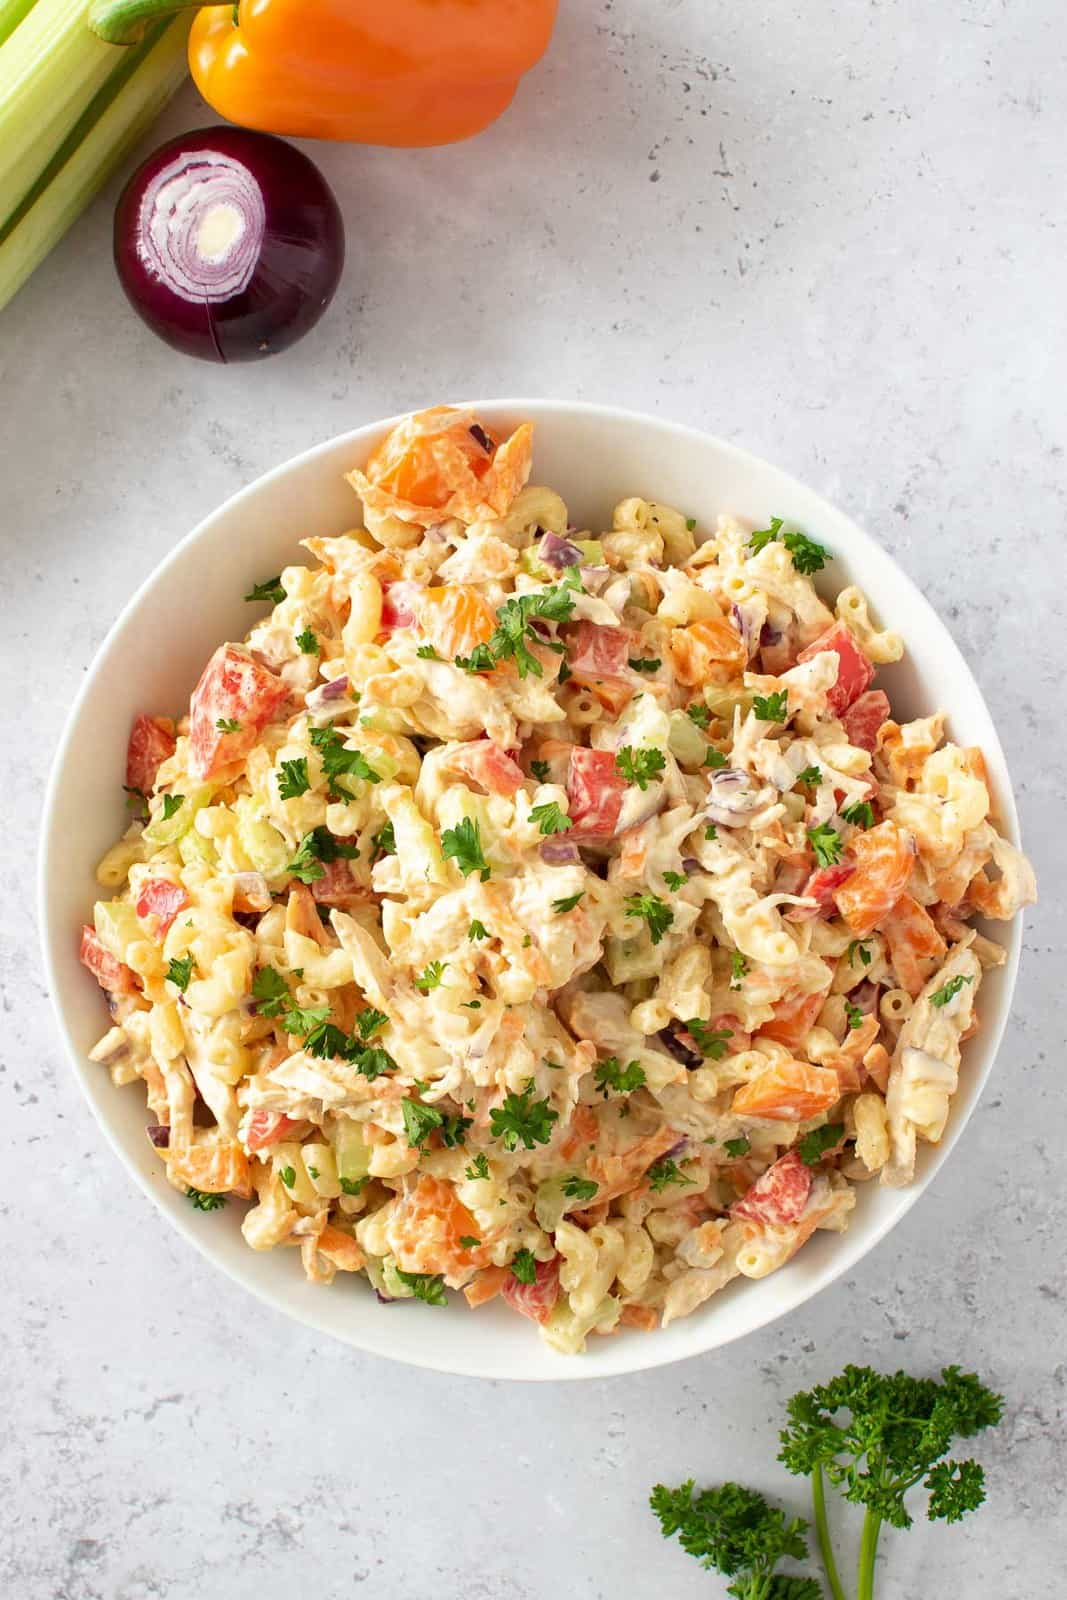 Chicken and macaroni salad with mayonnaise and vegetables.